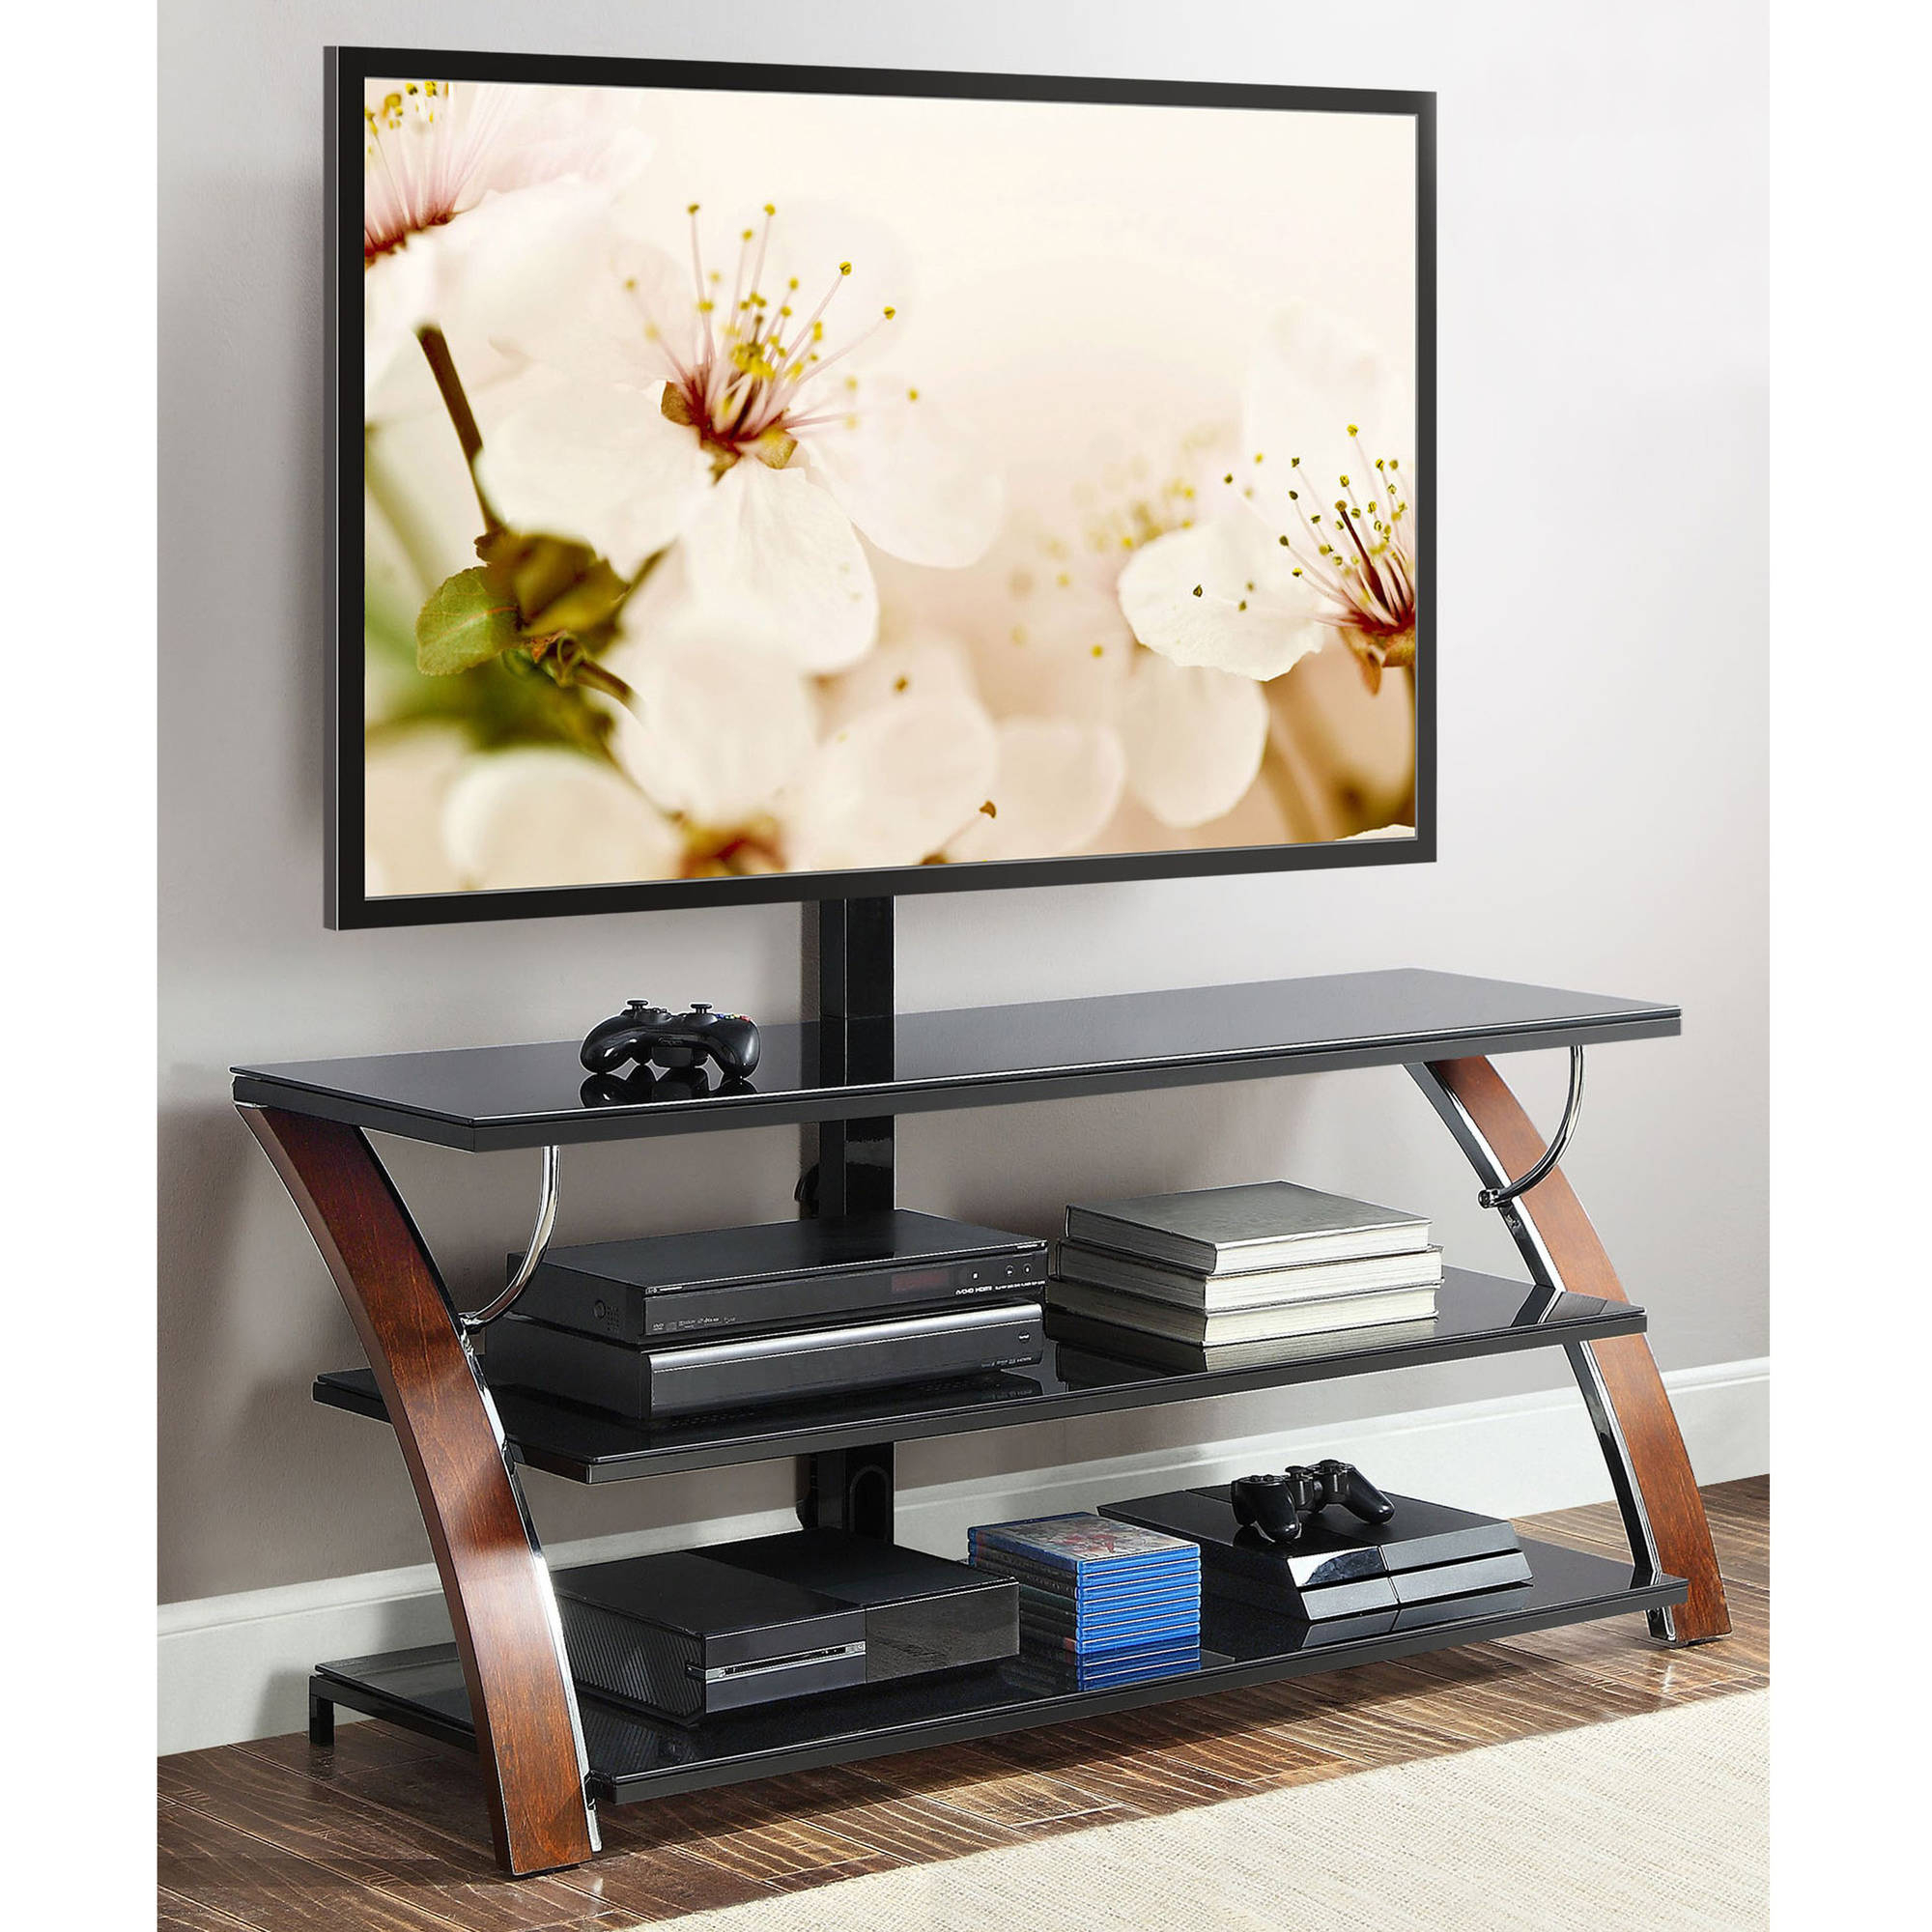 """Well Liked Unique Tv Stands For Flat Screens With Whalen Payton Brown Cherry 3 In 1 Flat Panel Tv Stand For Tvs Up To 65"""" – Walmart (View 16 of 20)"""